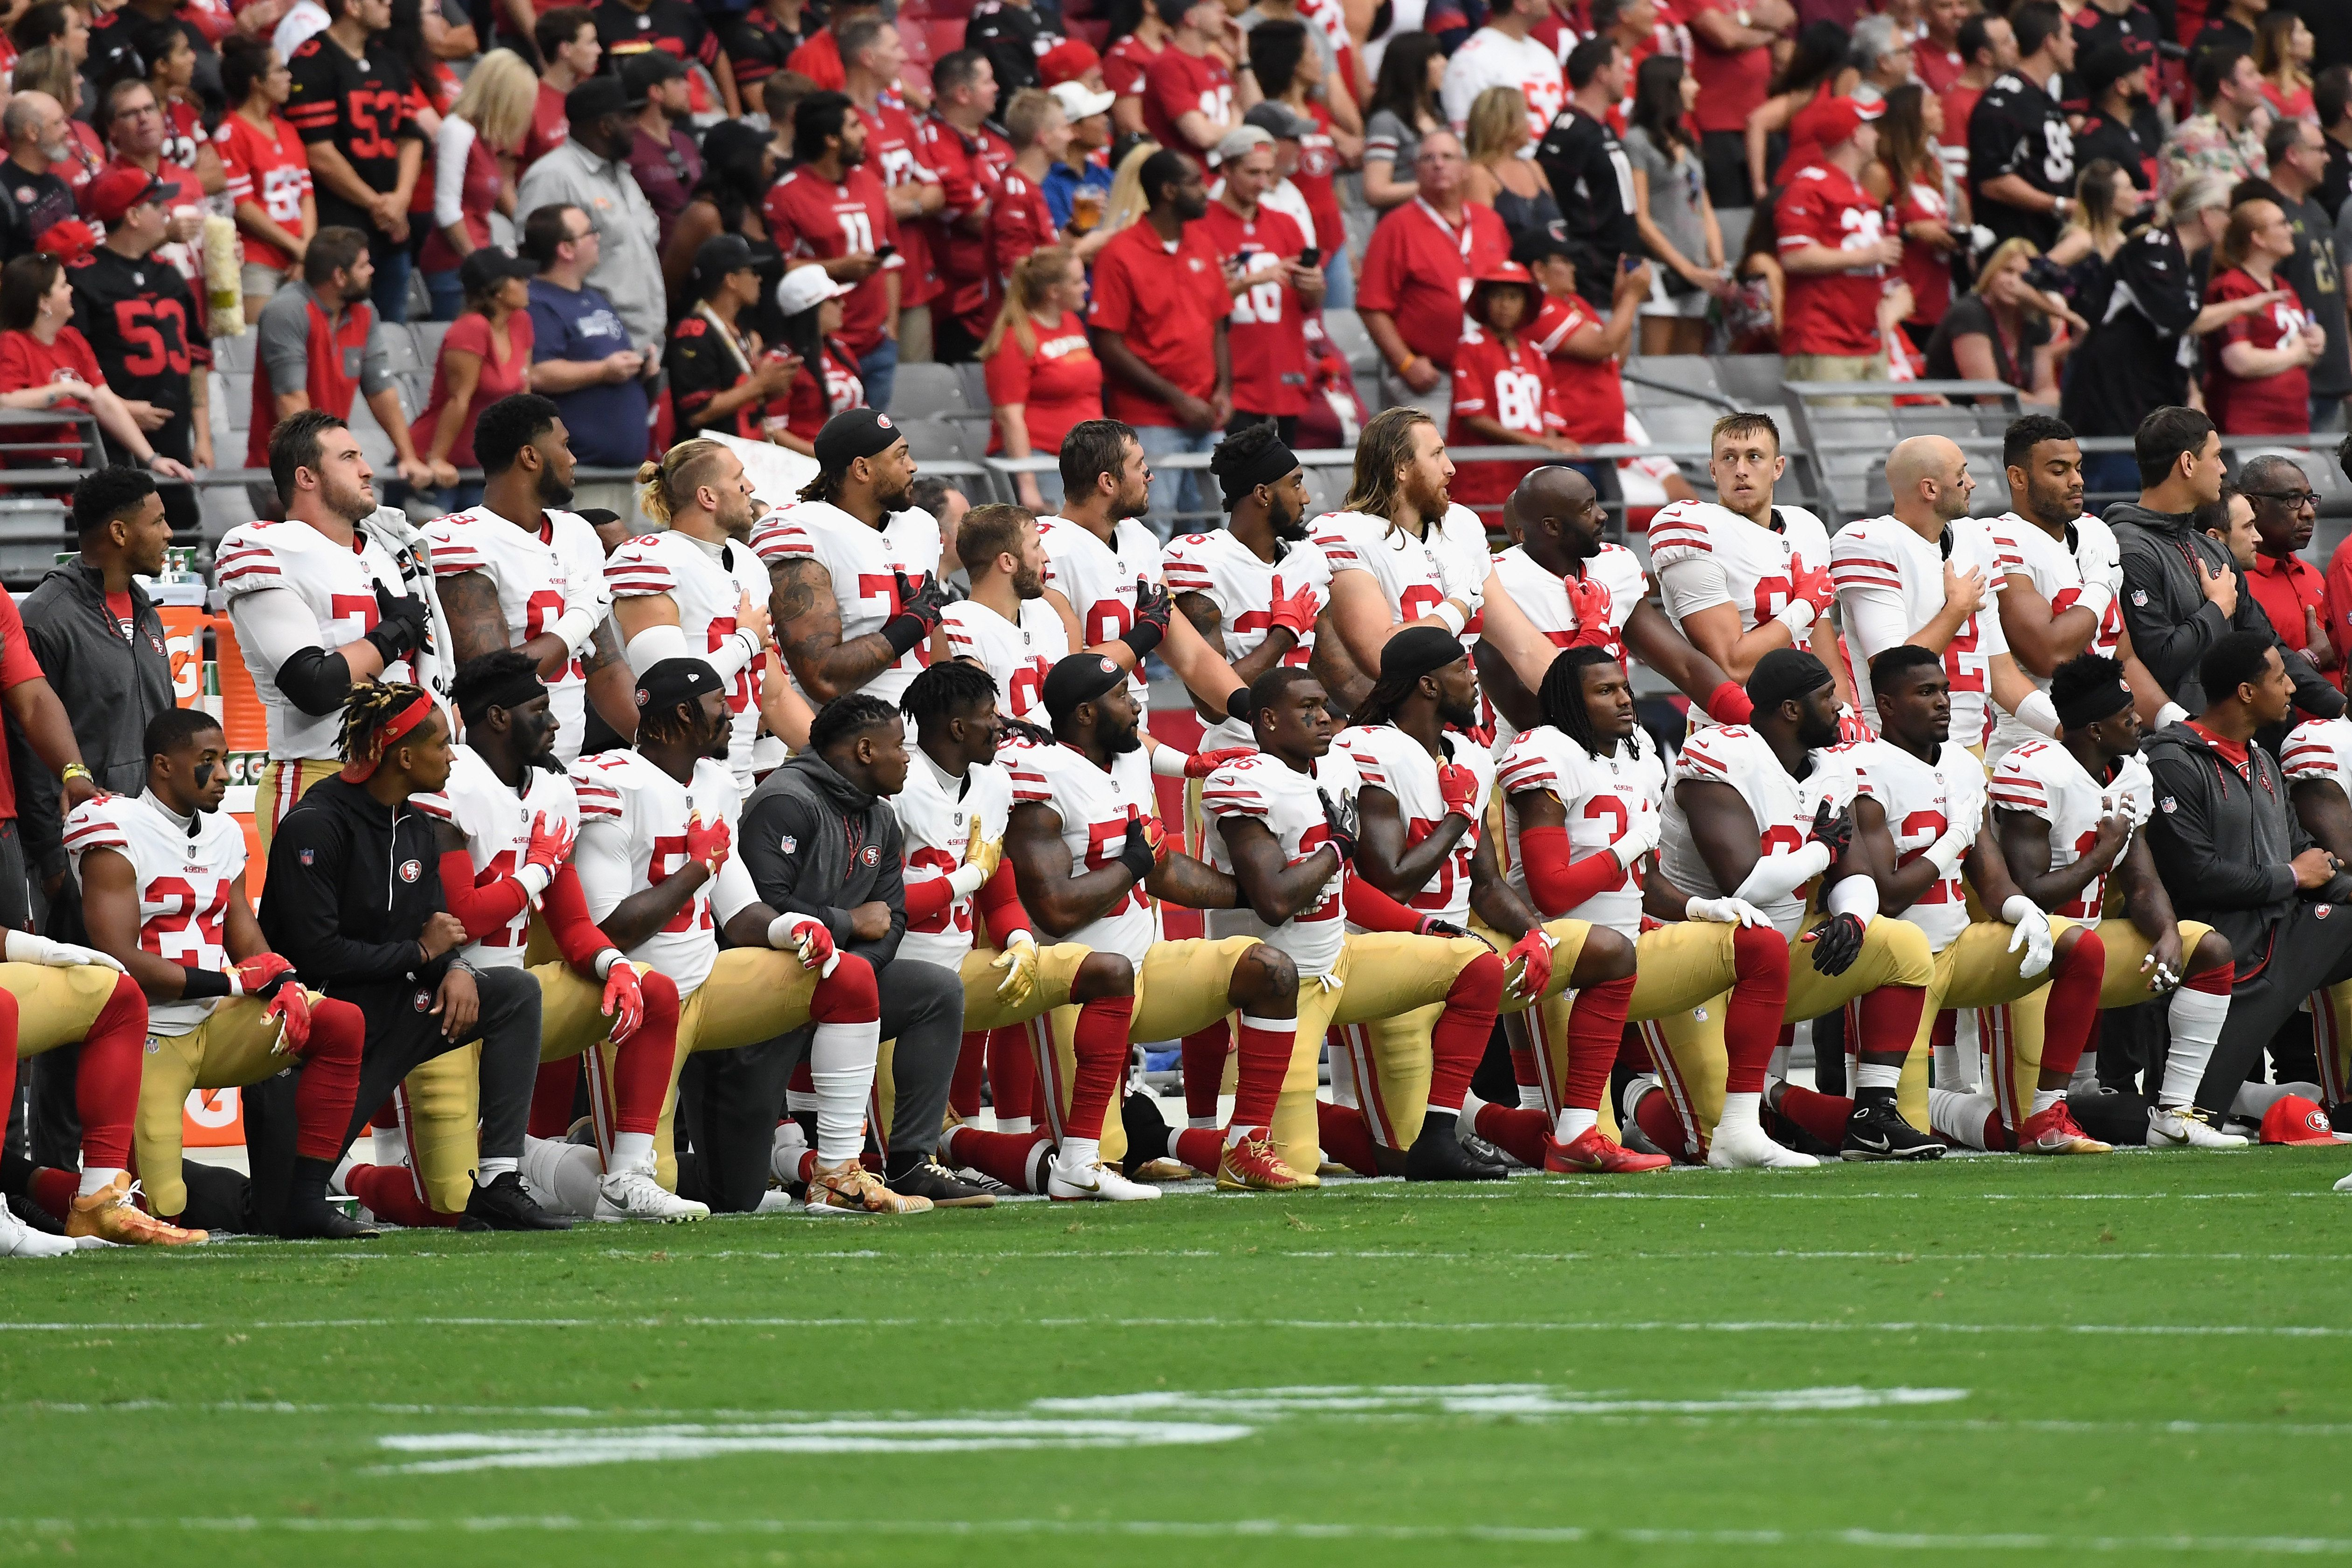 GLENDALE, AZ - OCTOBER 01: Members of the San Francisco 49ers kneel for the National Anthem before the start of the NFL game against the Arizona Cardinals at the University of Phoenix Stadium on October 1, 2017 in Glendale, Arizona.  (Photo by Norm Hall/Getty Images)